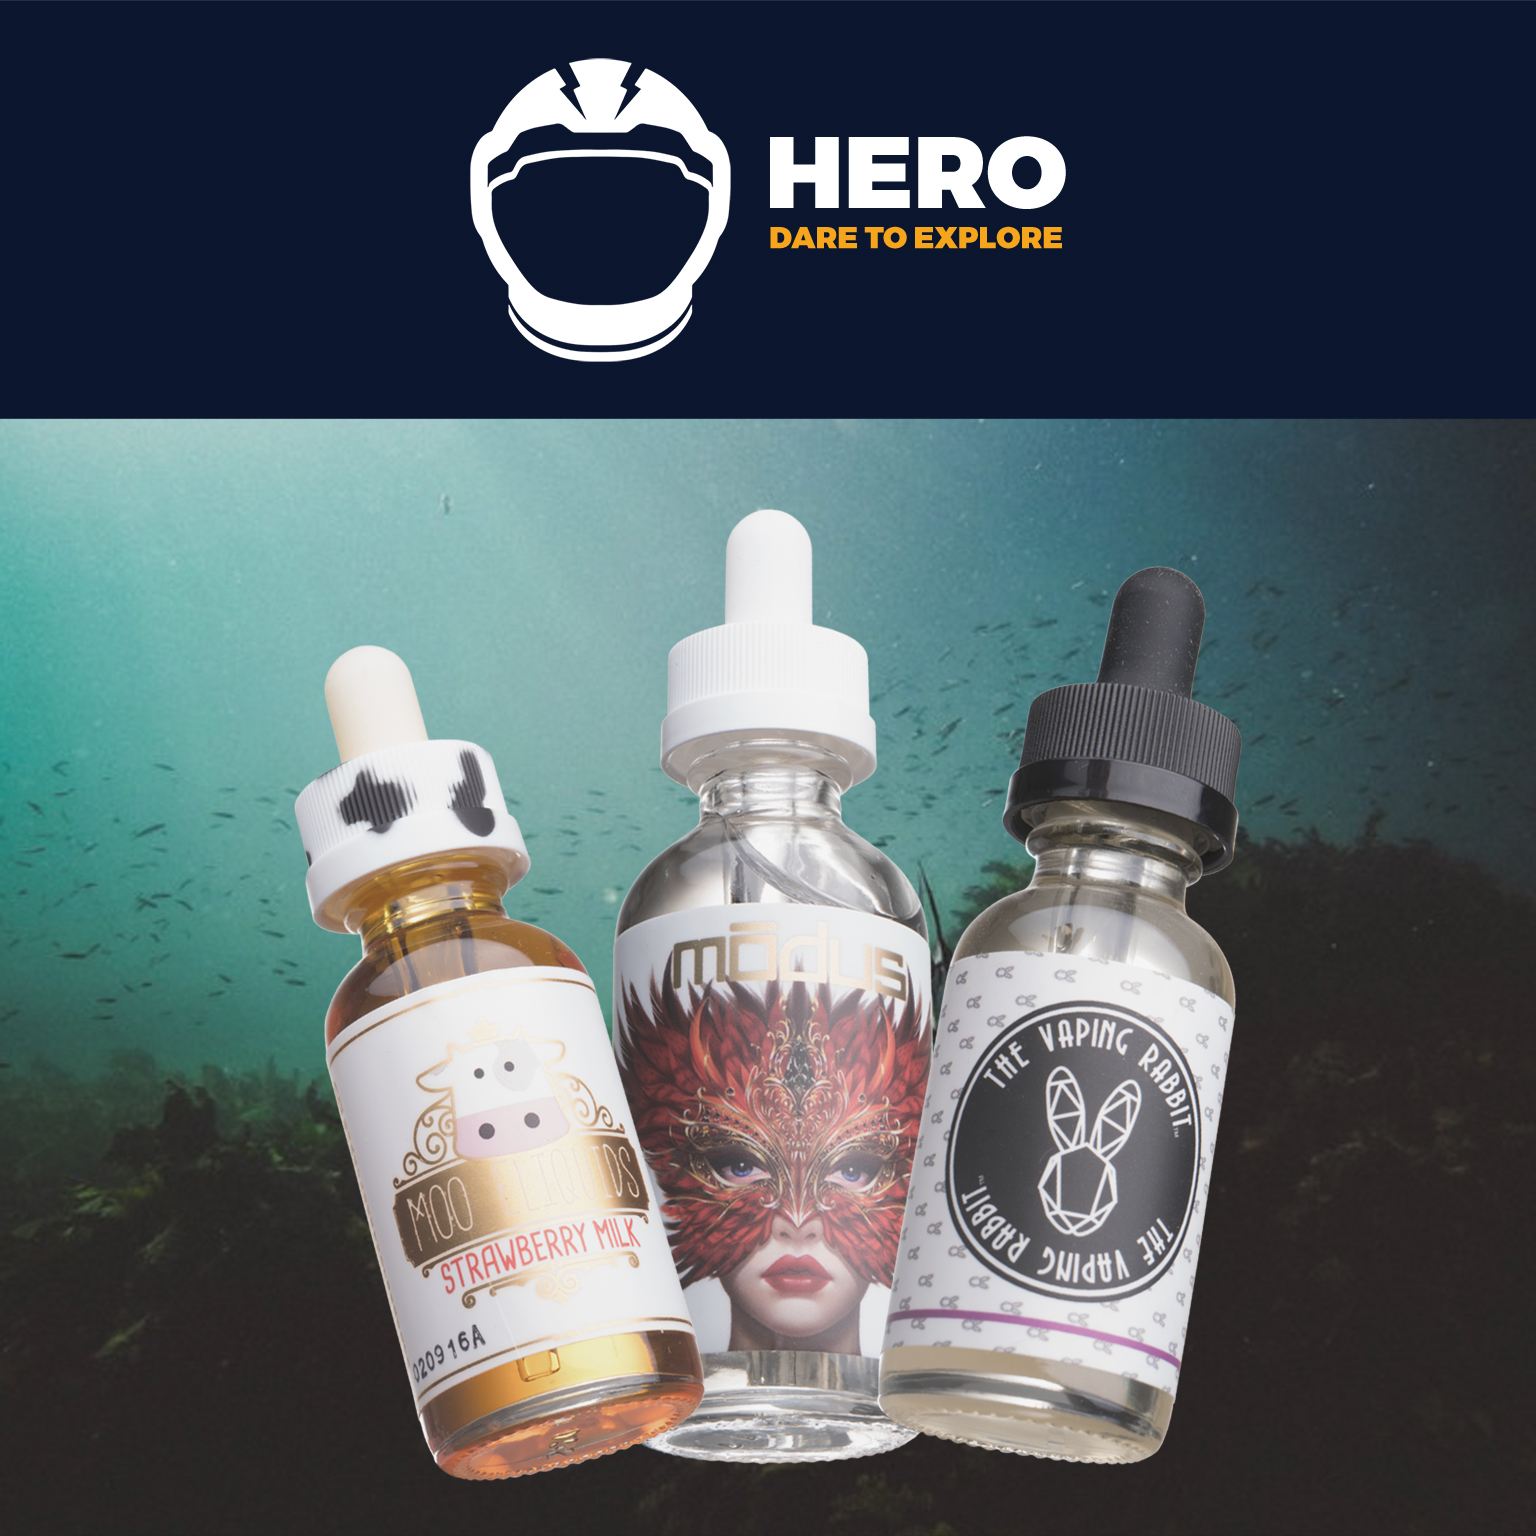 120mL SUPER HERO Box | Feat. Molly by Modus, Strawberry Milk by Moo Eliquids, and The Cheshire Cat by The Vaping Rabbit Photo